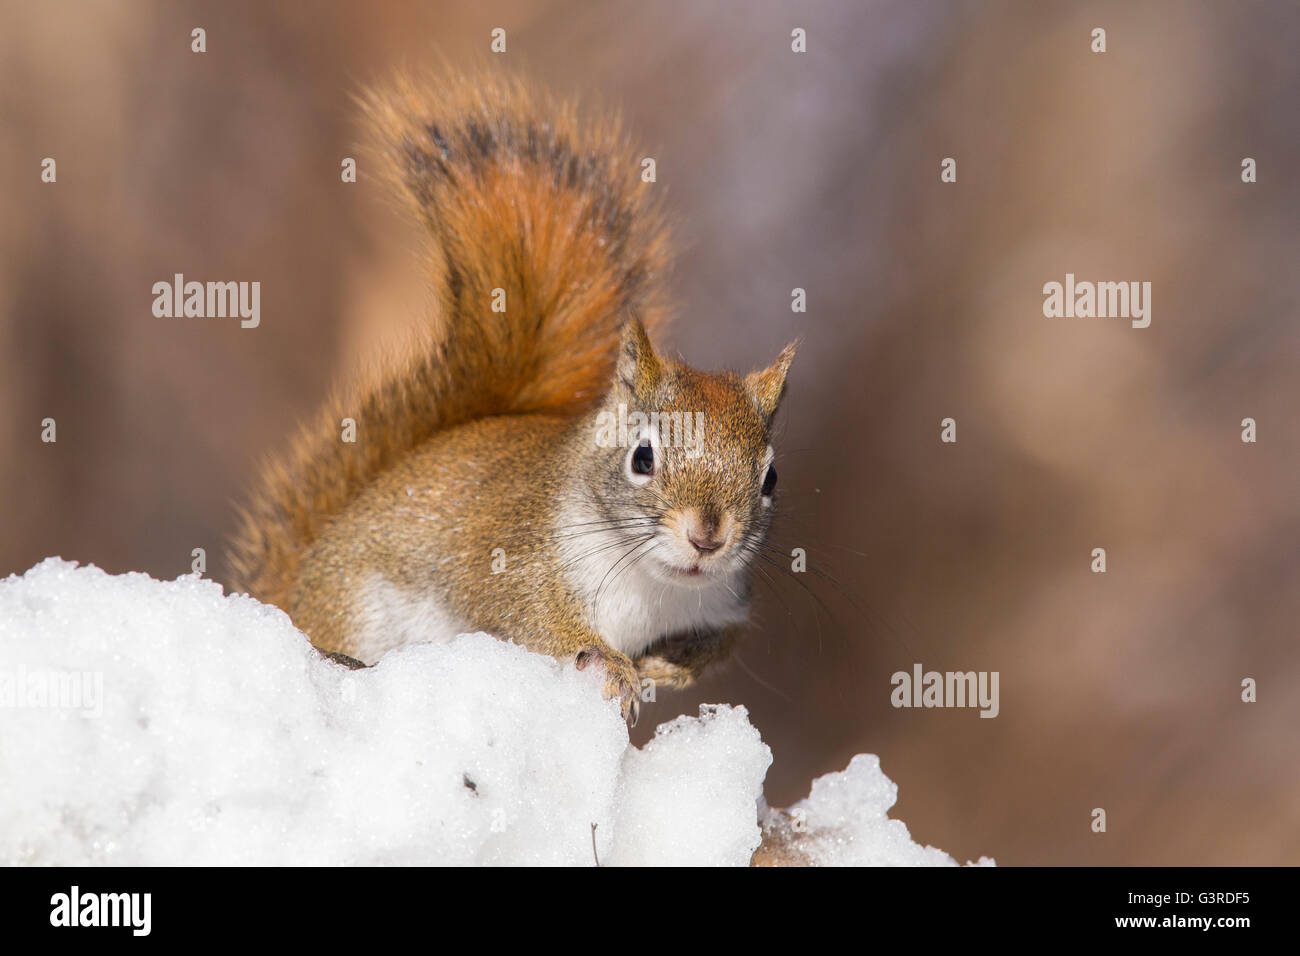 Funny North American écureuil rouge en hiver Photo Stock